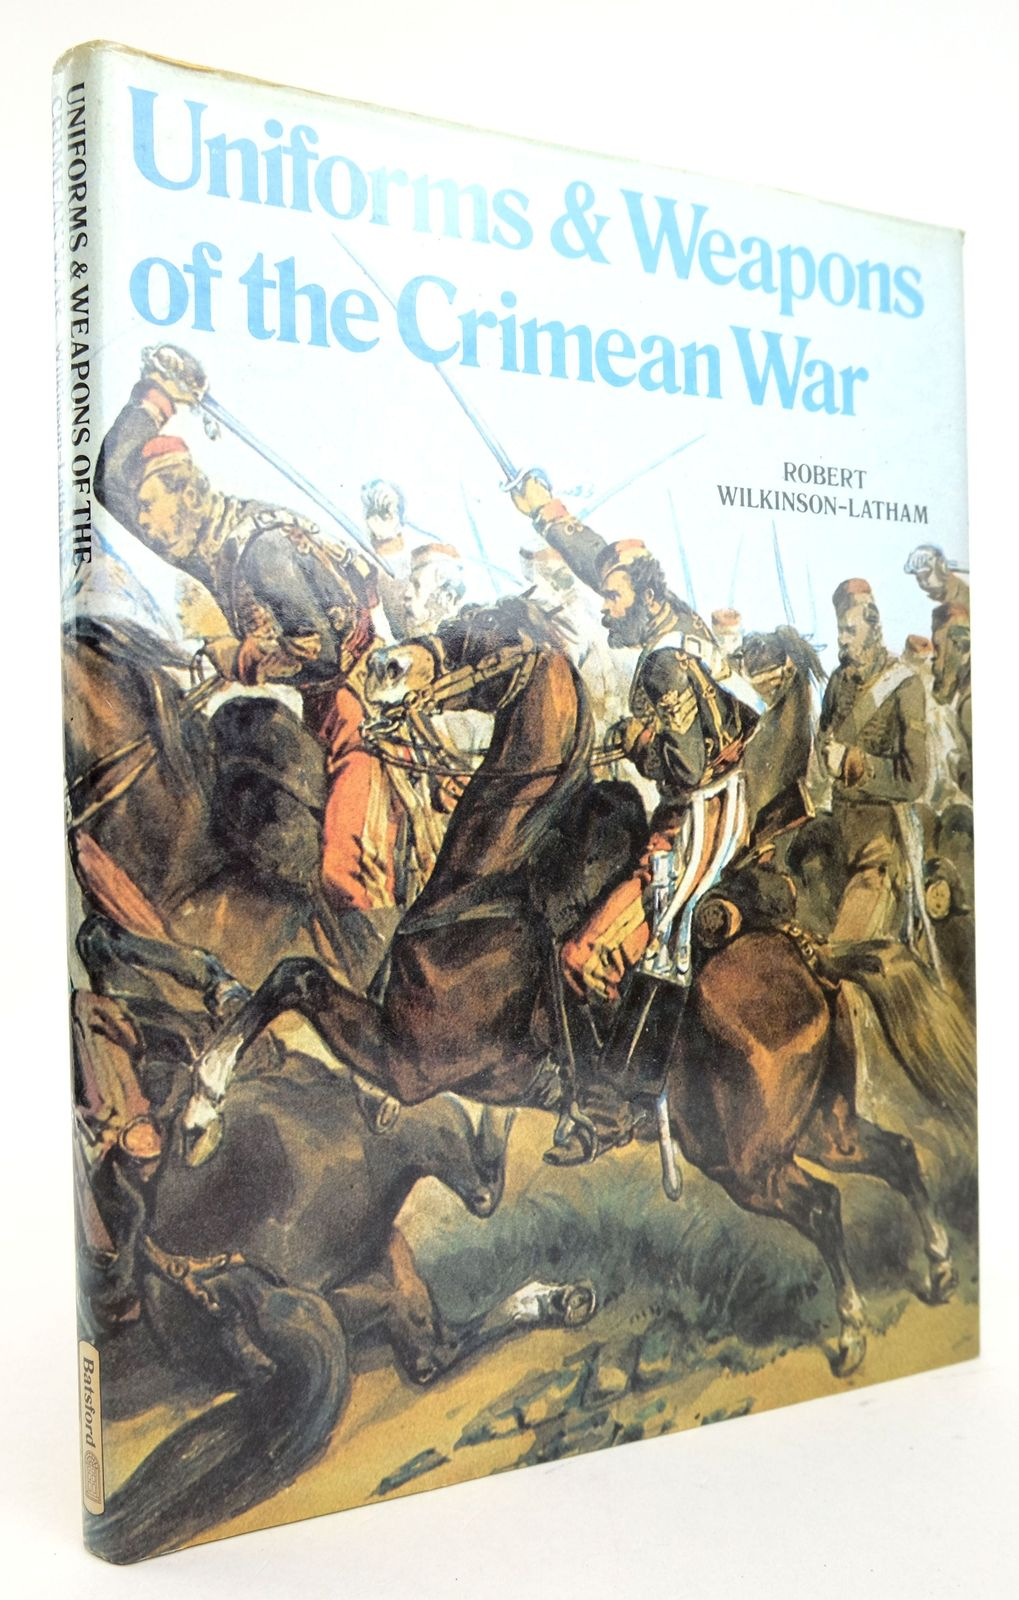 Photo of UNIFORMS & WEAPONS OF THE CRIMEAN WAR written by Wilkinson-Latham, Robert published by B.T. Batsford (STOCK CODE: 1819704)  for sale by Stella & Rose's Books